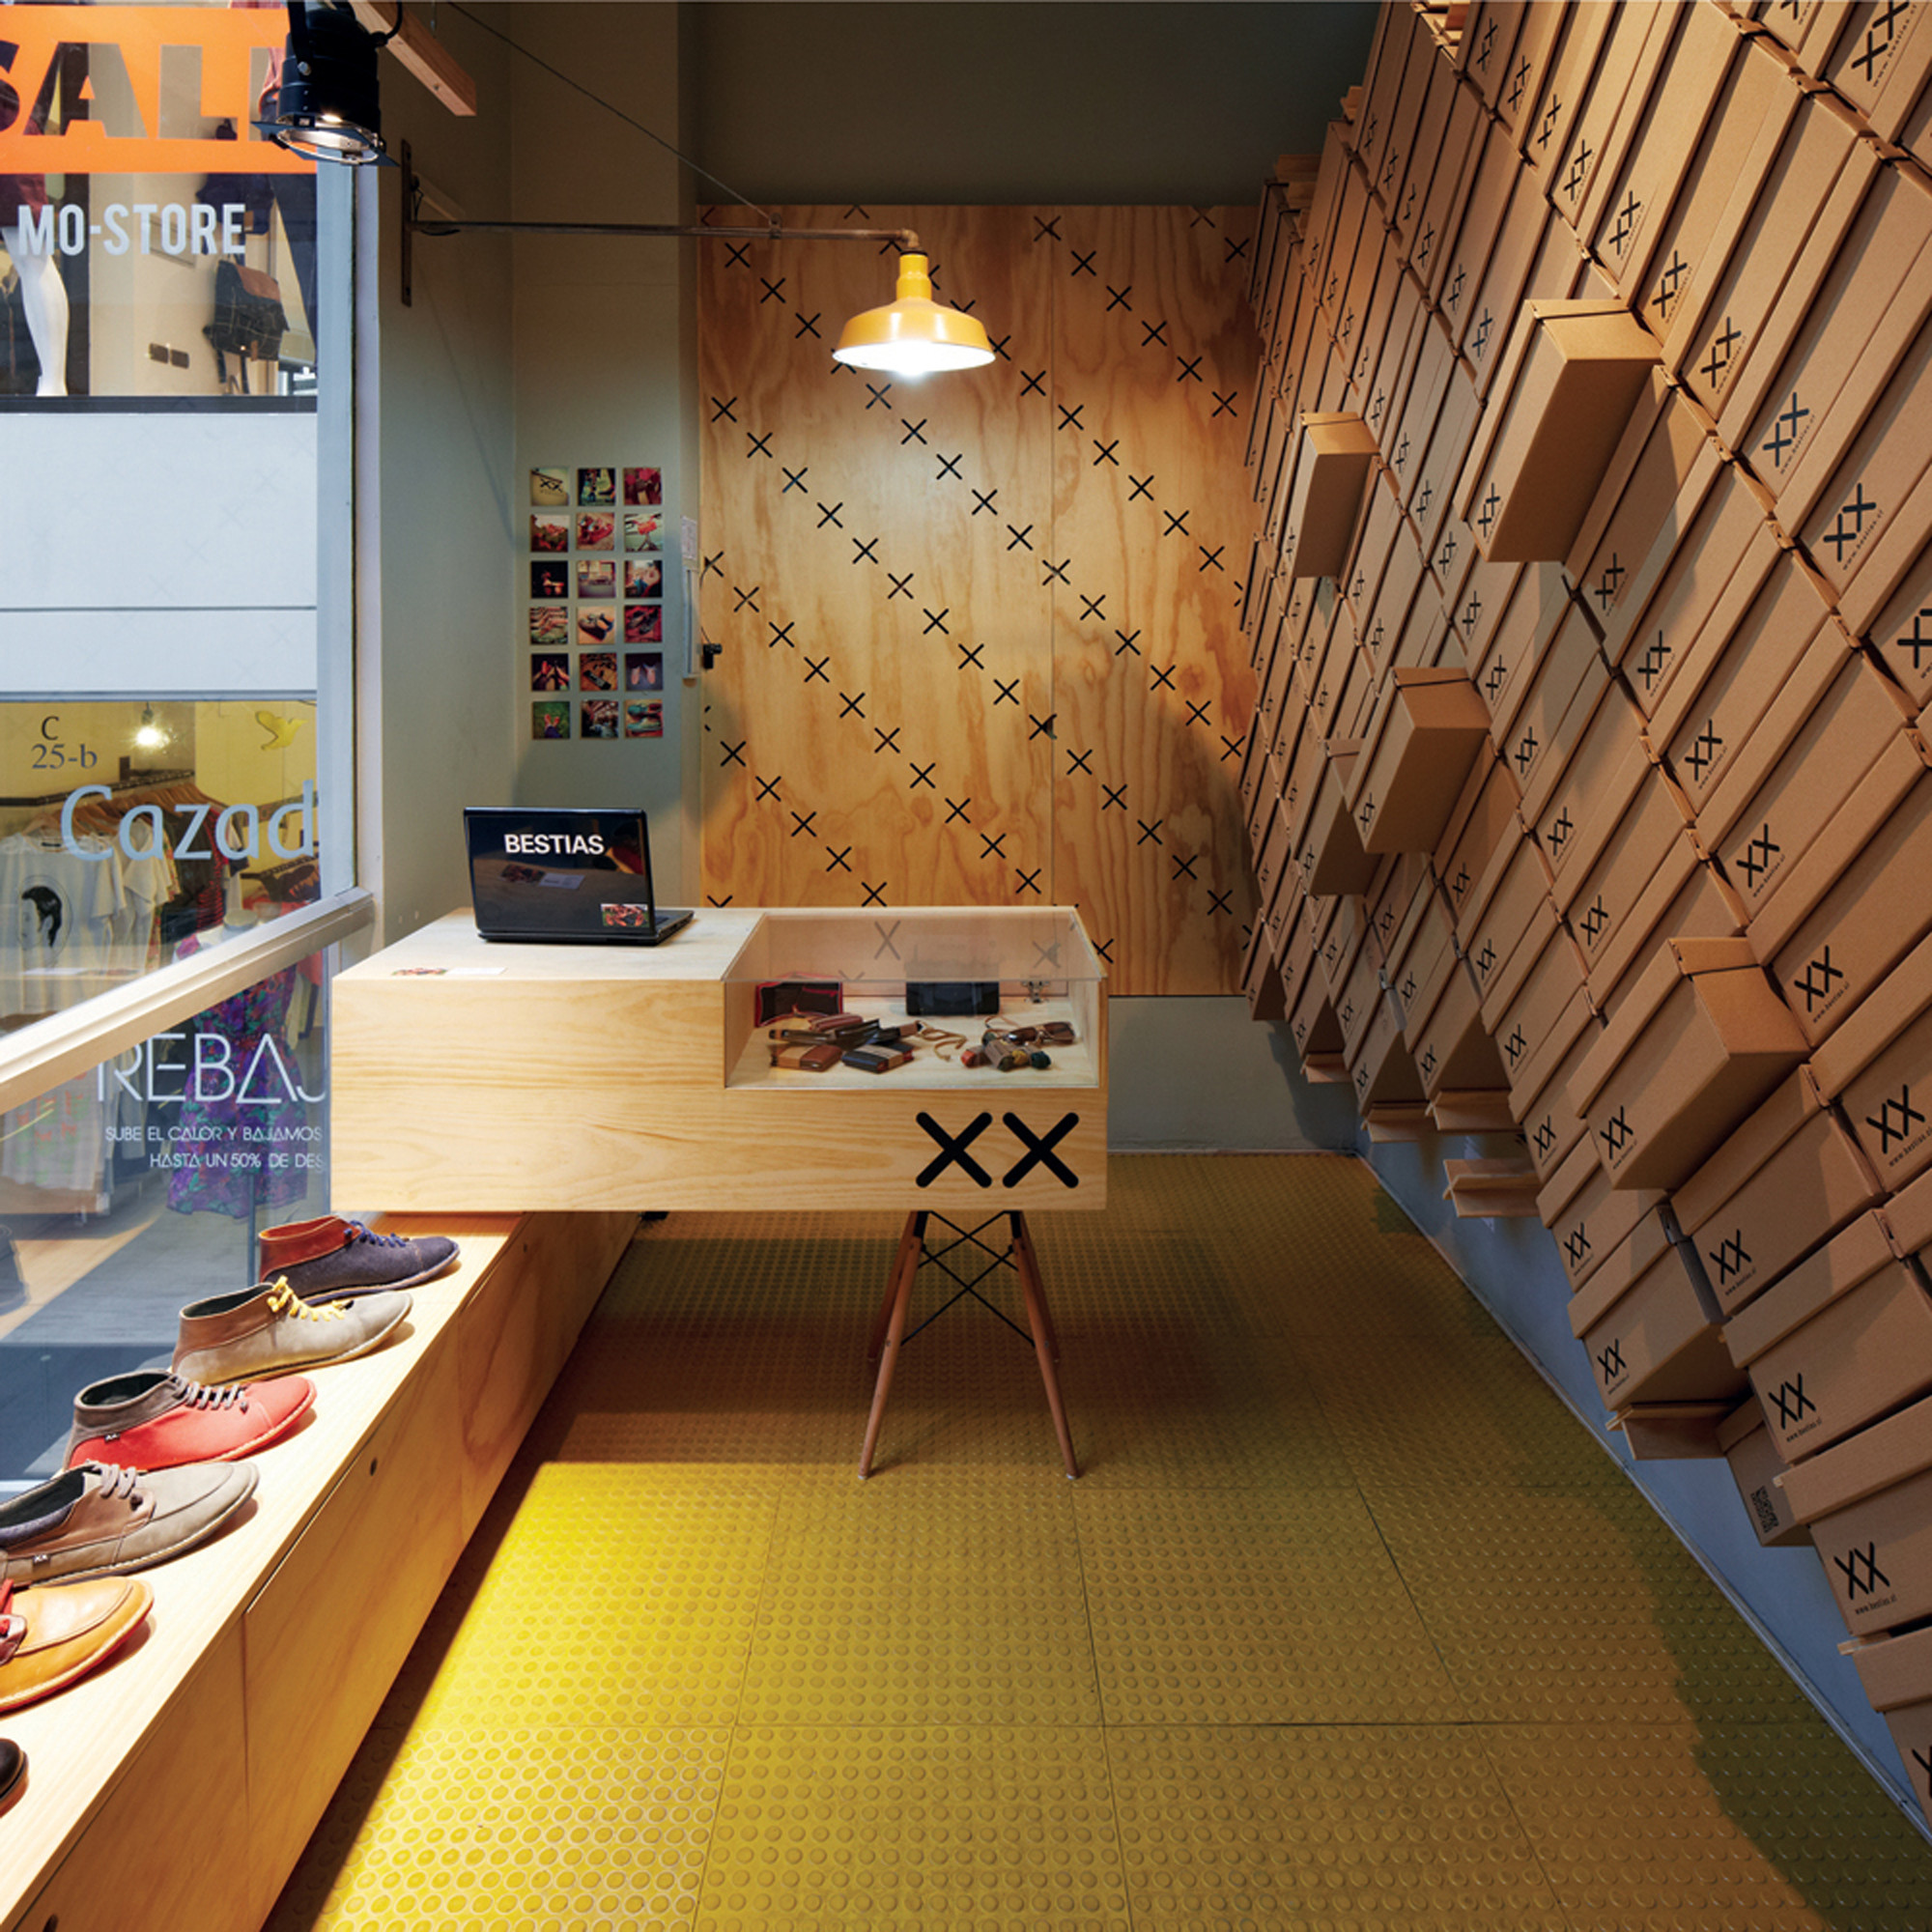 Modern Architectural Design Ideas for Retail Store: The Bestias XX ...